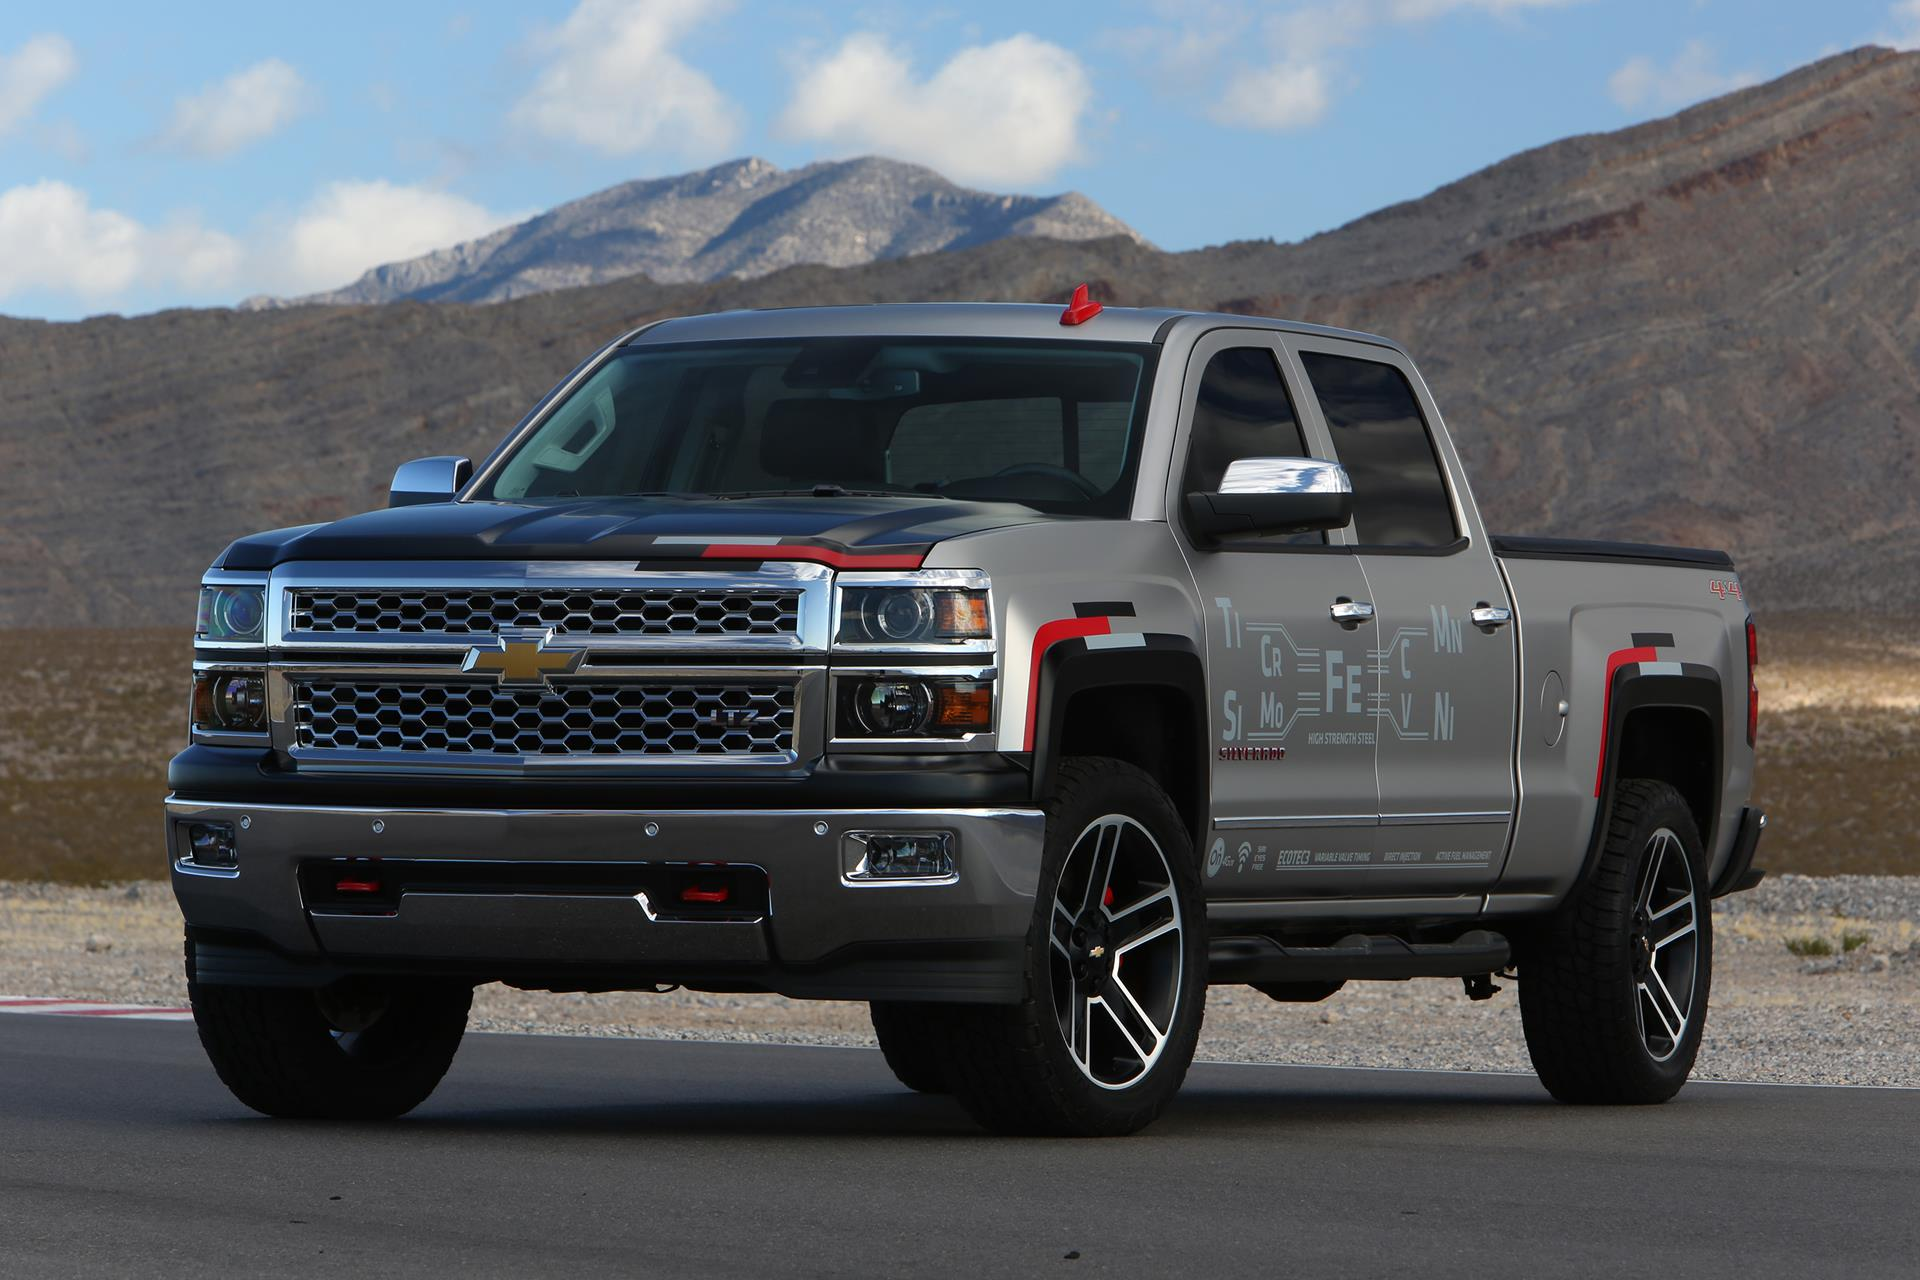 2015 Chevrolet Silverado Toughnology Concept News and ...